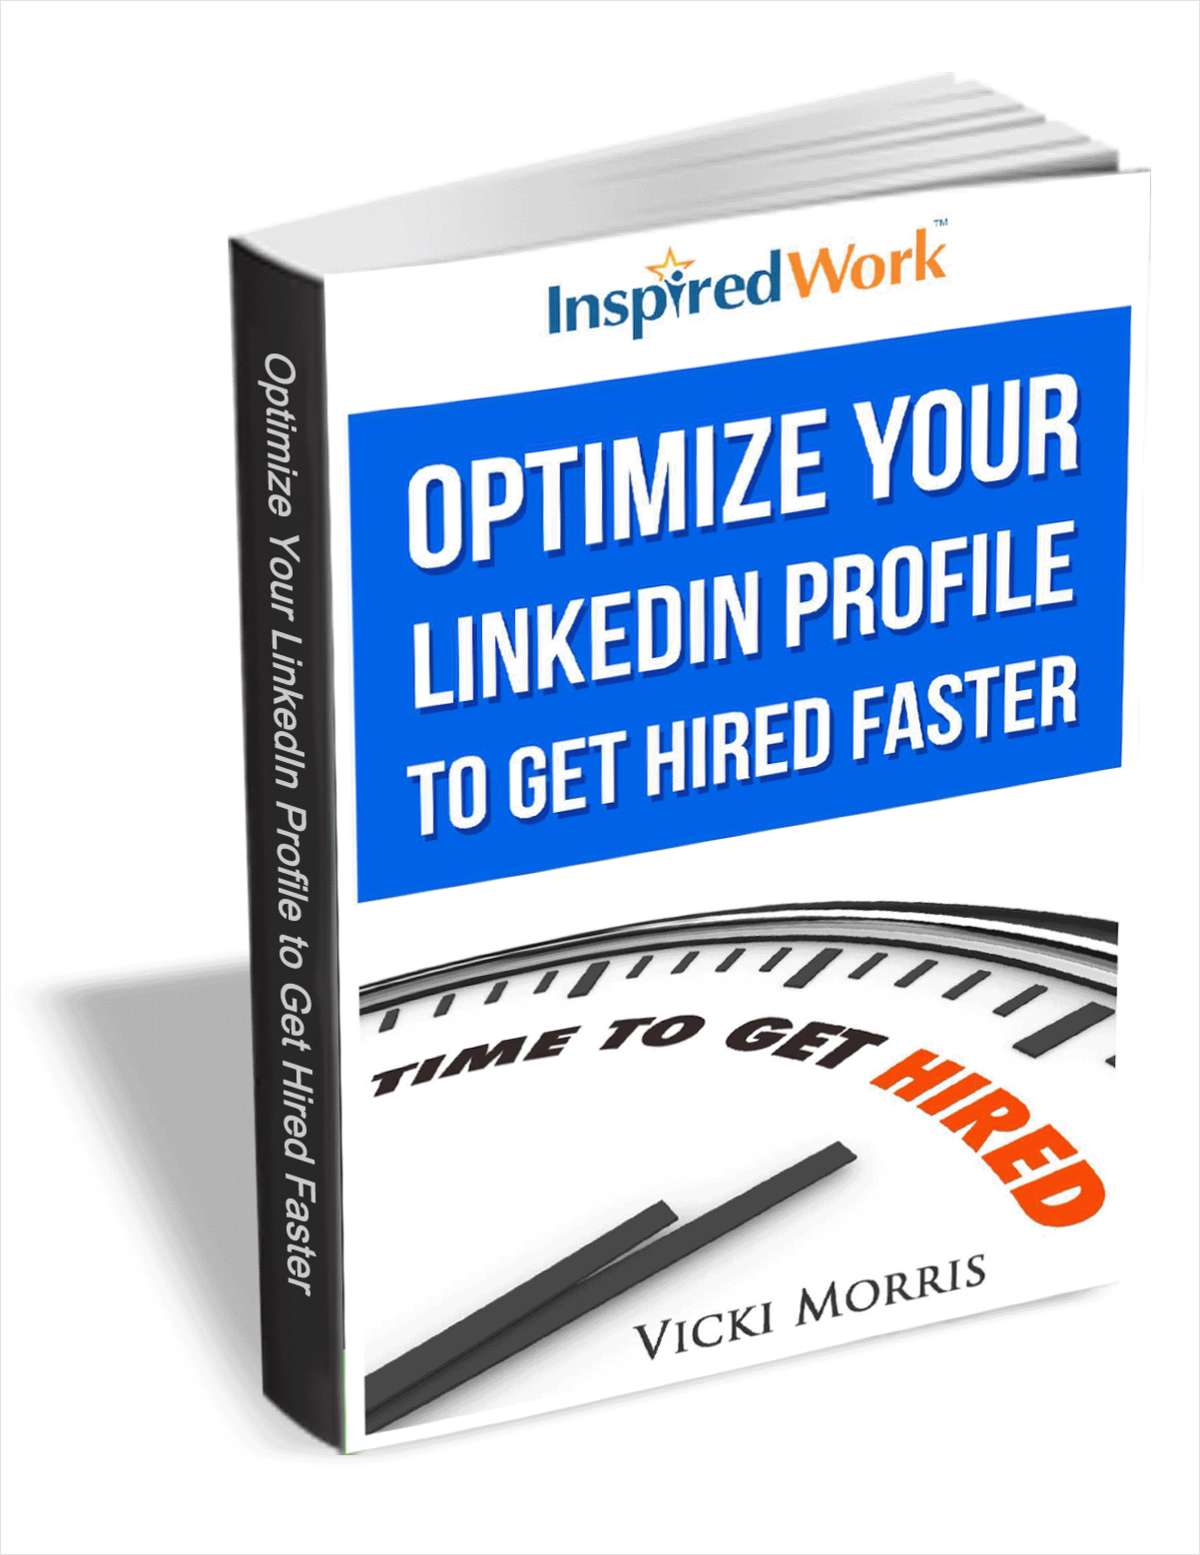 Optimize Your LinkedIn Profile and Get Hired Faster